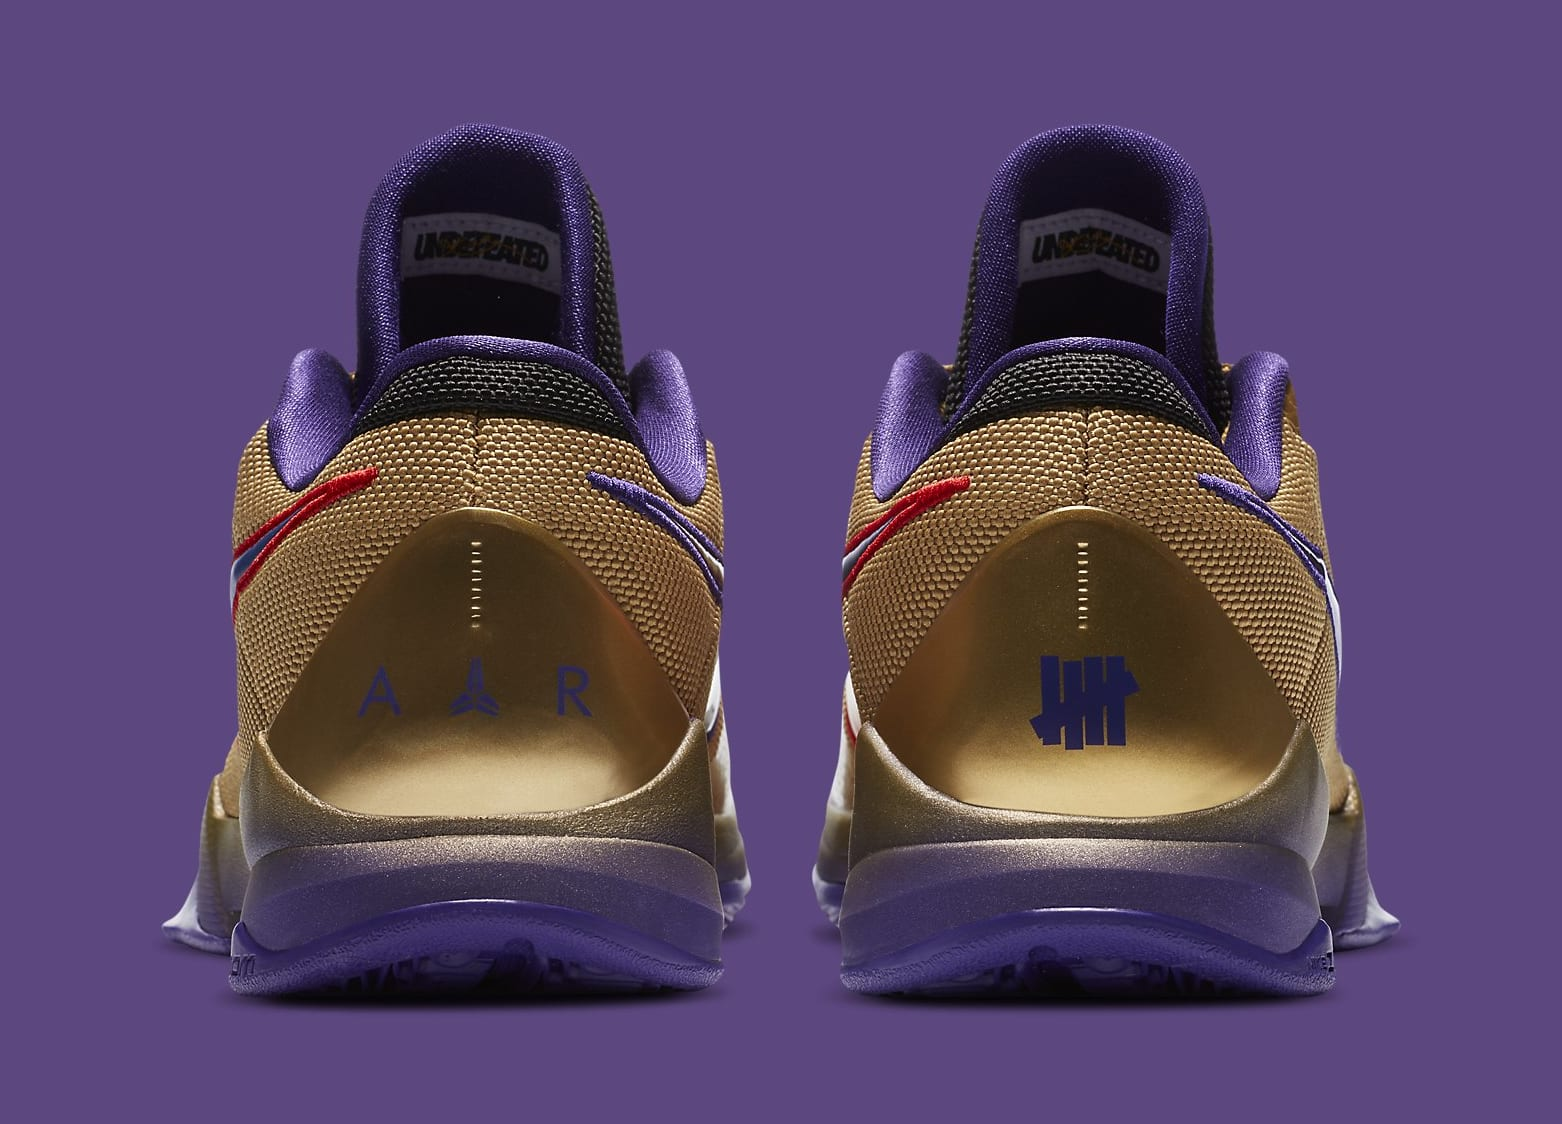 Undefeated x Nike Kobe 5 Gold Hall of Fame Release date DA6809-700 Heel